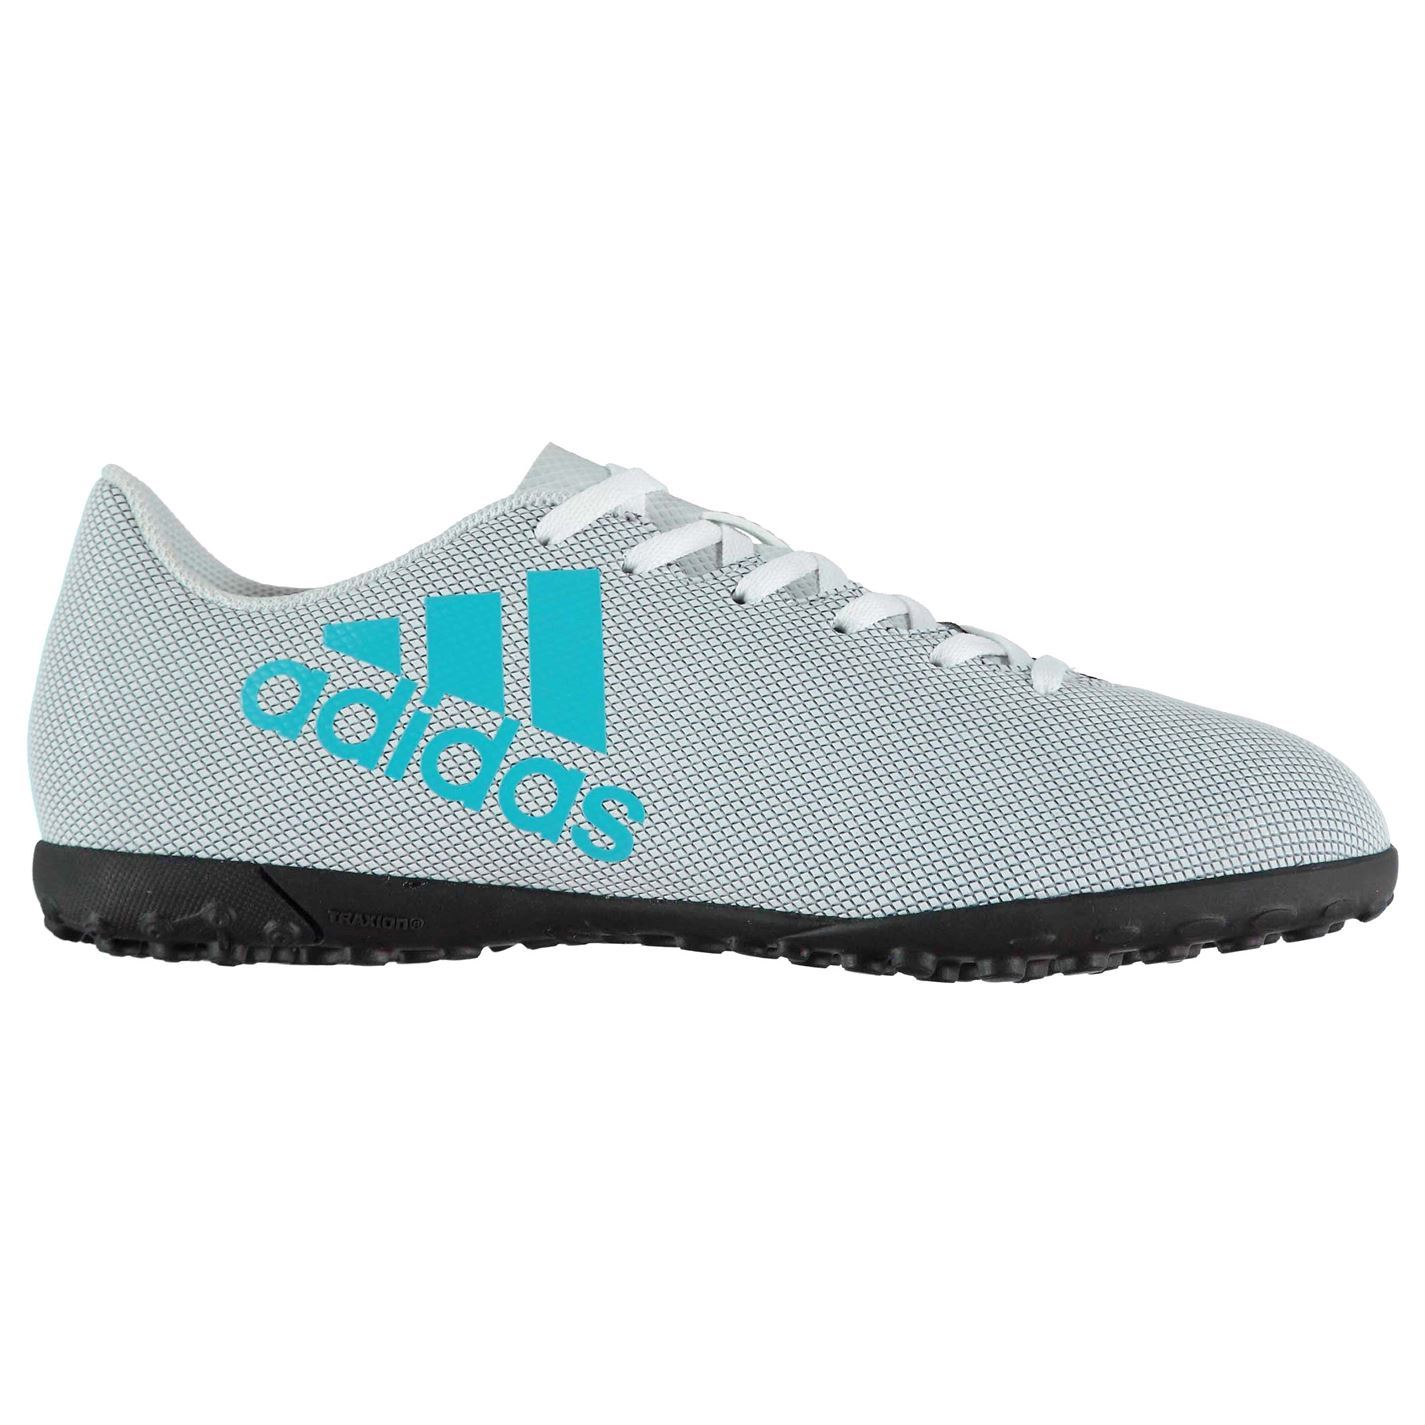 bc0f610e62b6 ... adidas X 17.4 AG Artificial Grass Trainers Mens Wht/Gry/Blue Football  Soccer ...